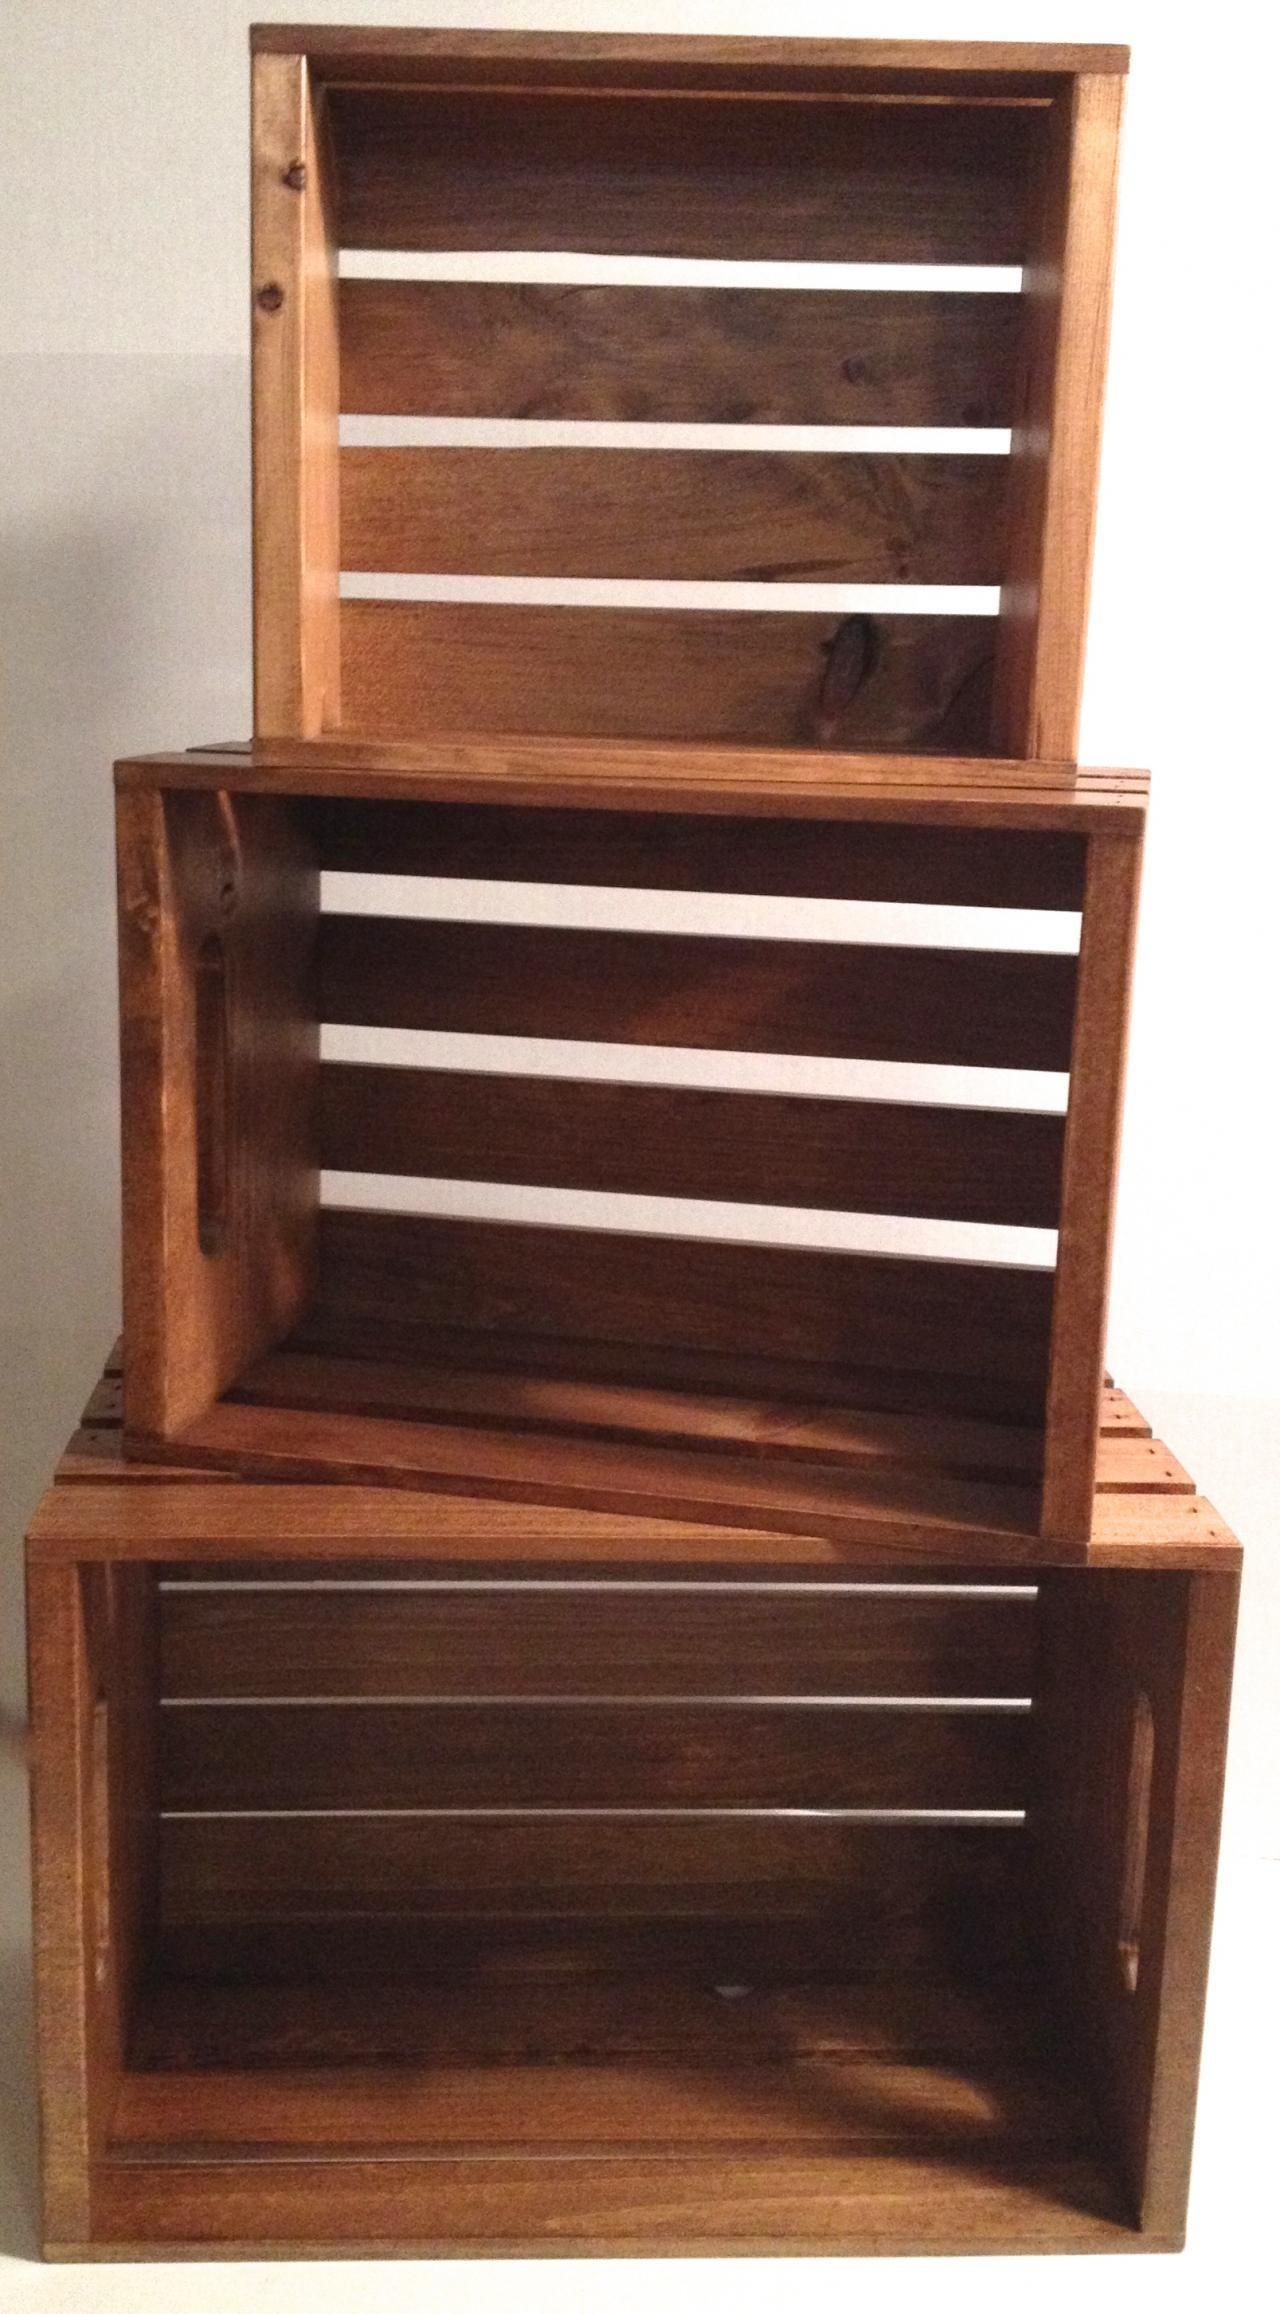 Rustic Wood Dark Stained Stacking Crates Display For Markets Country Stores Grocers General Stores Etc Cu Retail Store Design Boutique Display Rustic Wood